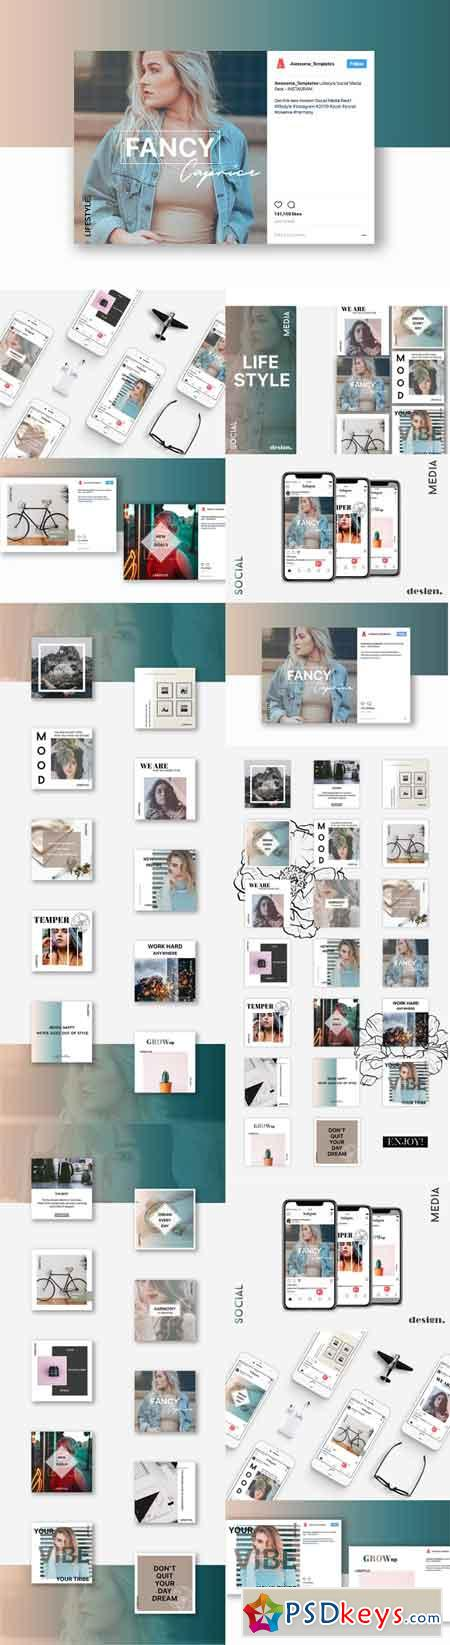 LIFESTYLE Instagram Template Set 3009102